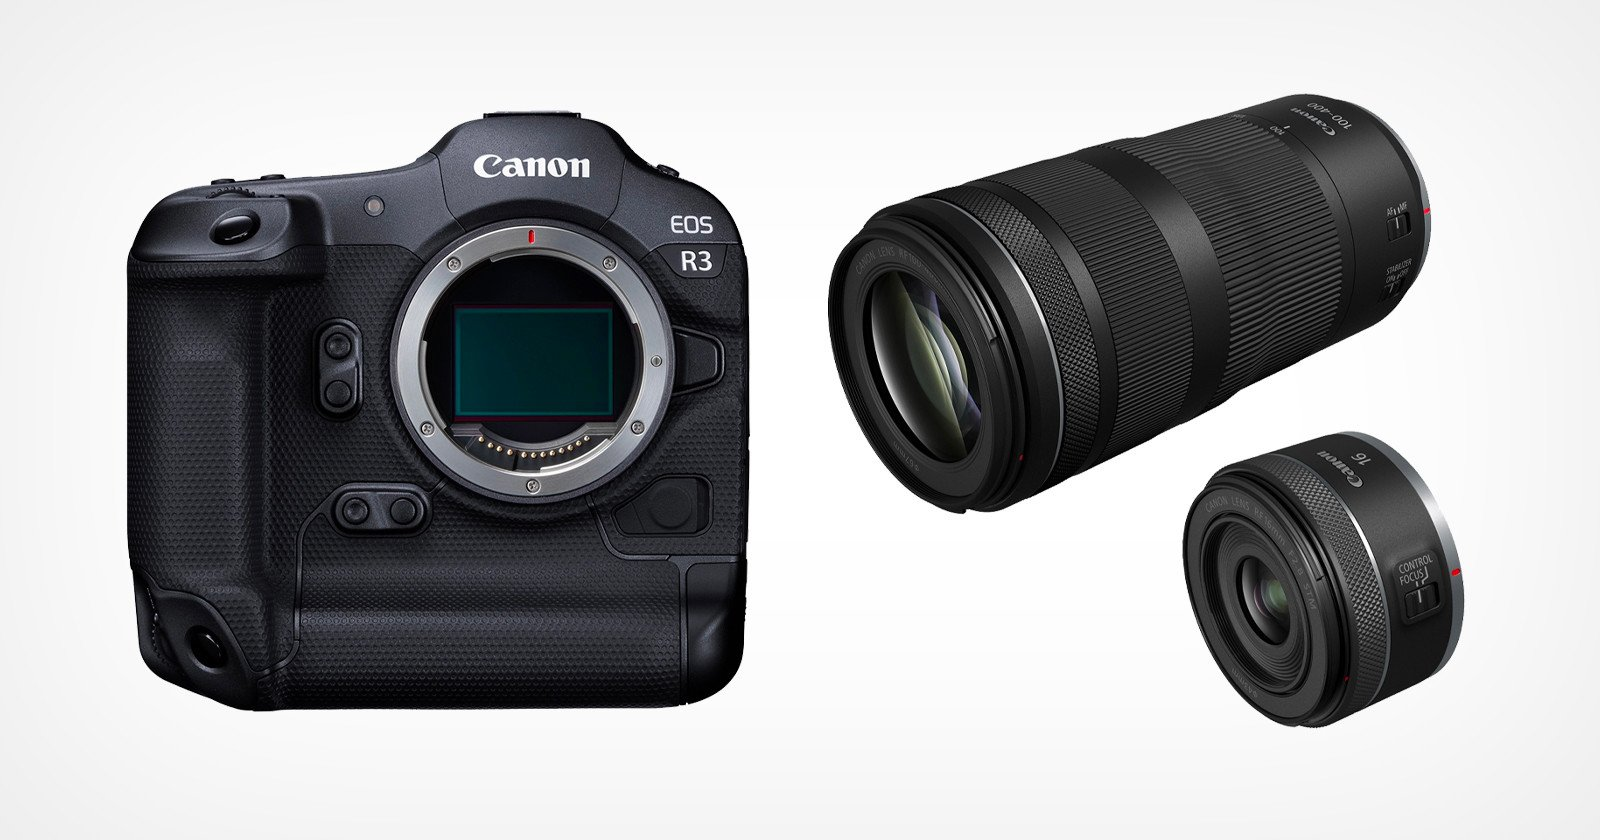 Canon Says it Can't Meet Demand for the R3 or Any of its New Lenses